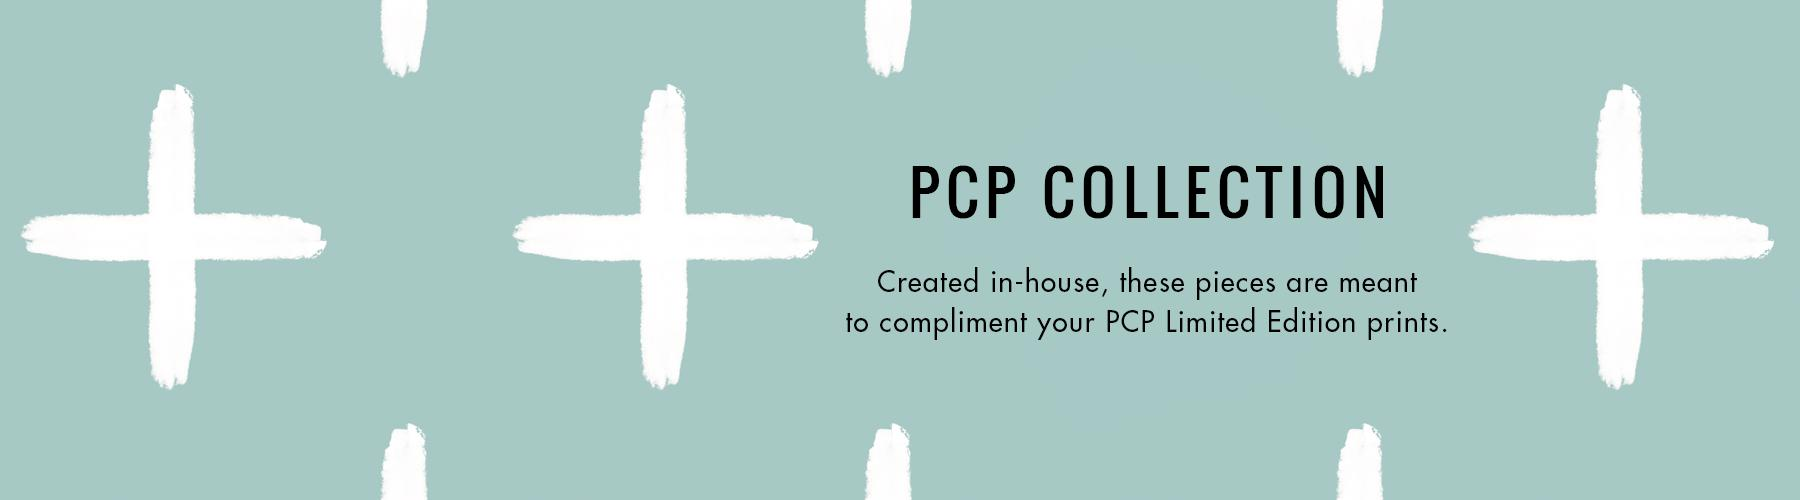 PCP Collection